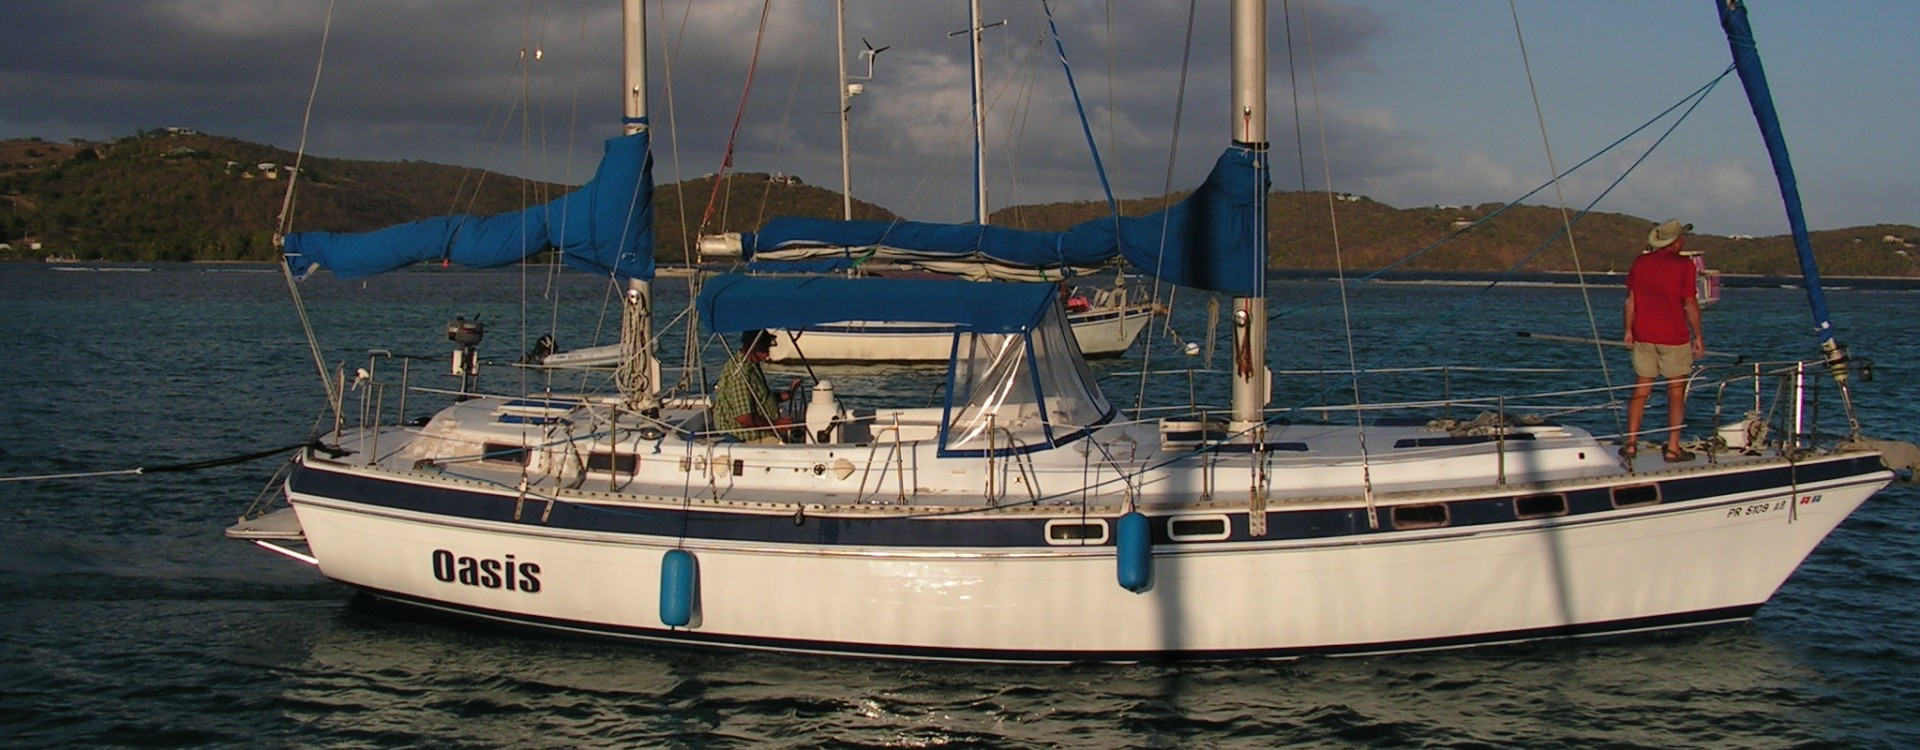 S/V Oasis